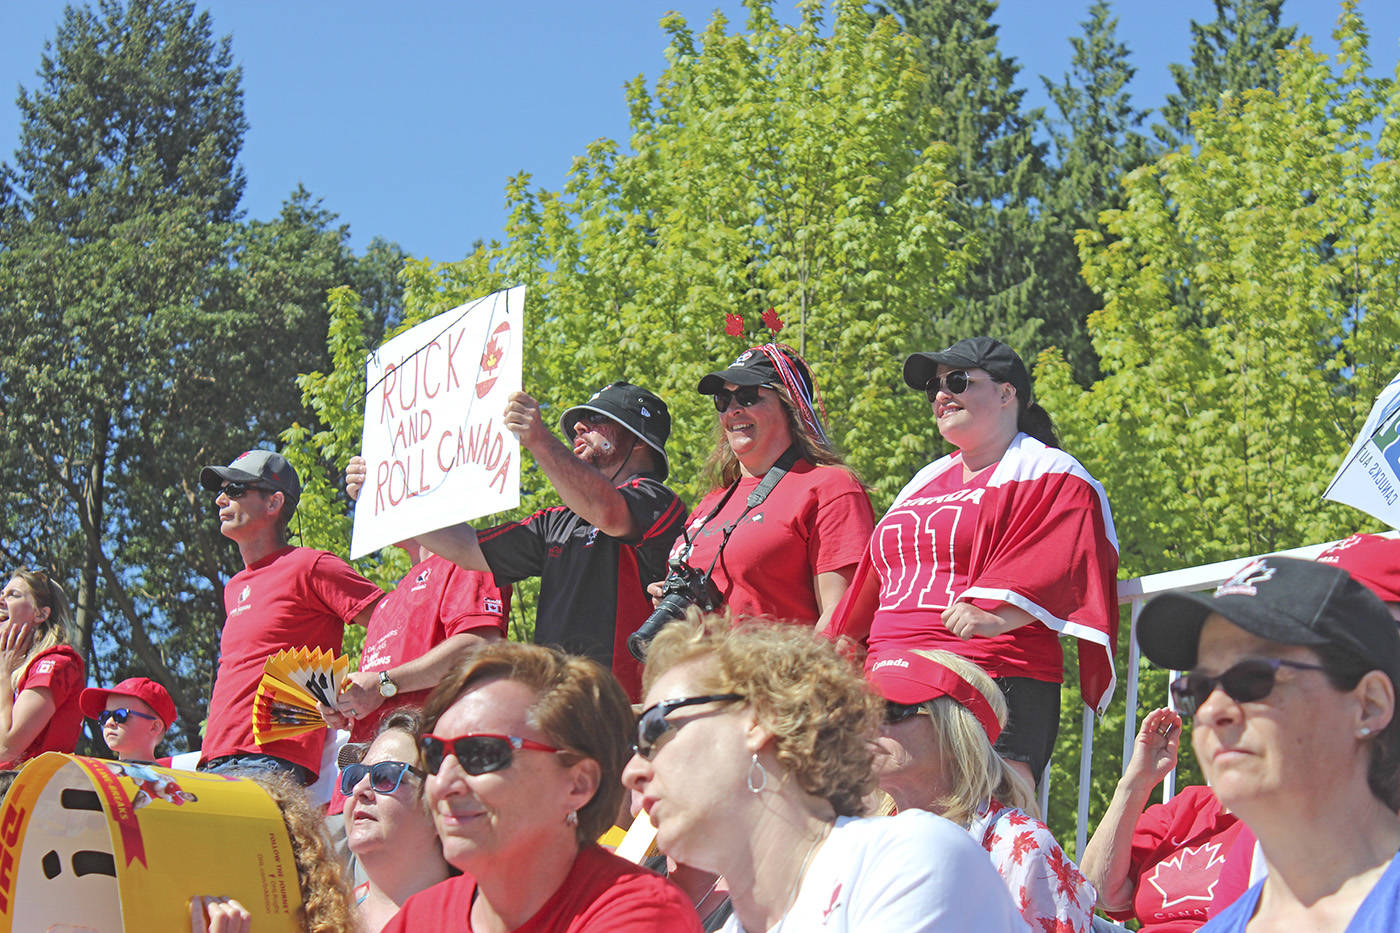 Fans cheer on Canada's women's sevens team in the quarterfinal match against the USA at Westhills Stadium in Langford Sunday. Canada lost 28-26 to the USA. (Kendra Wong/News Gazette staff)